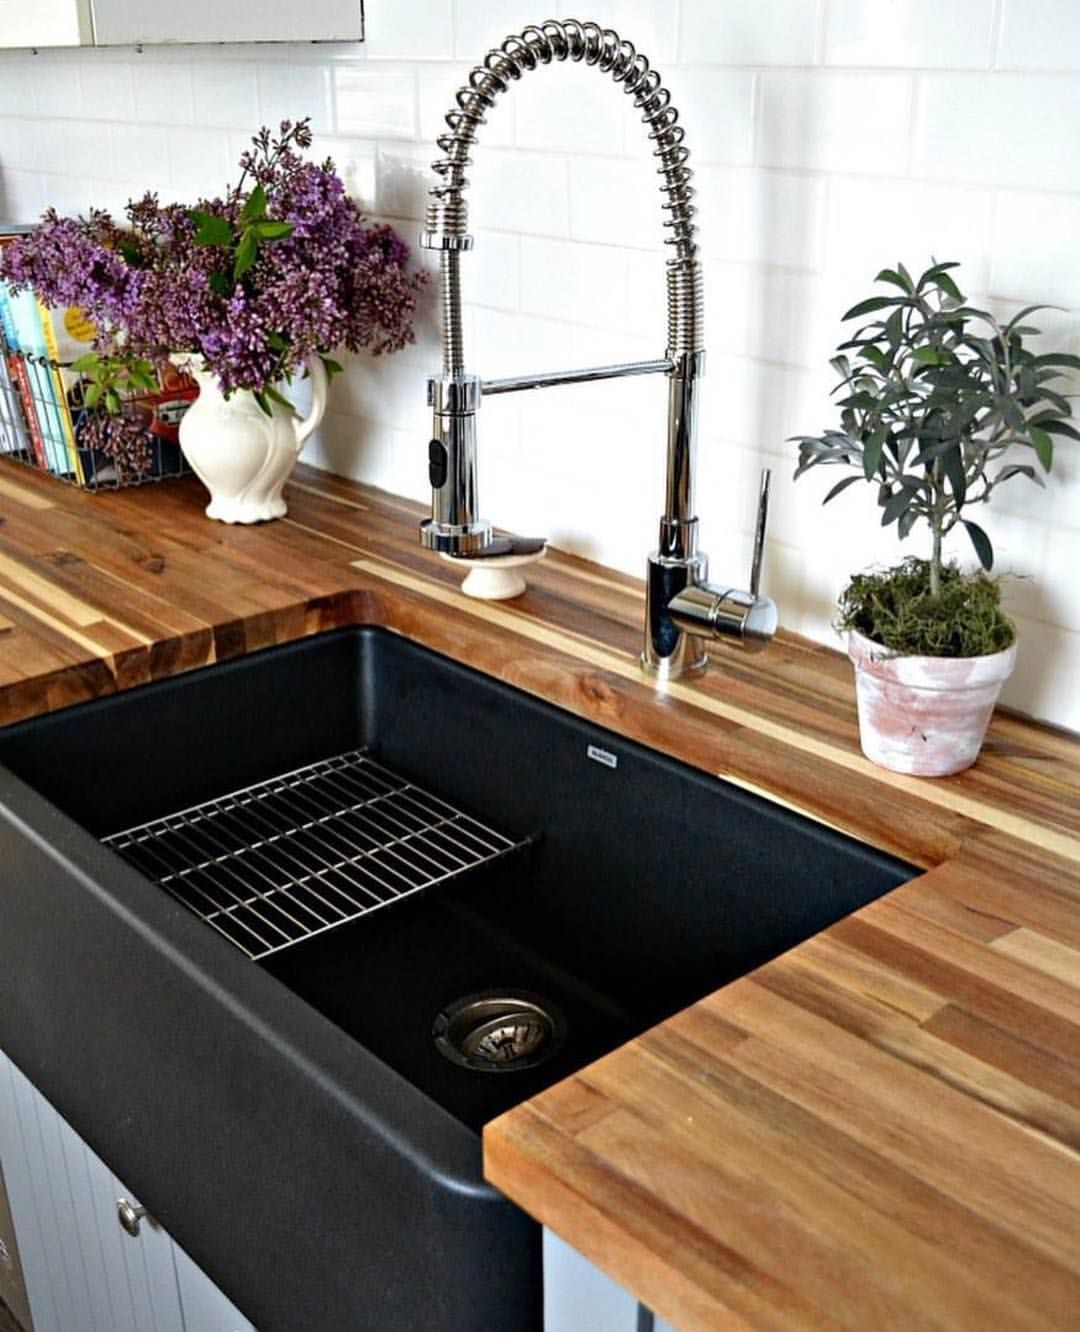 Do Something Innovative With Your Design Absolutely Love The Use Of This Blancocanada Sink And Faucet Wit Kitchen Sink Design Tidy Kitchen Best Kitchen Sinks